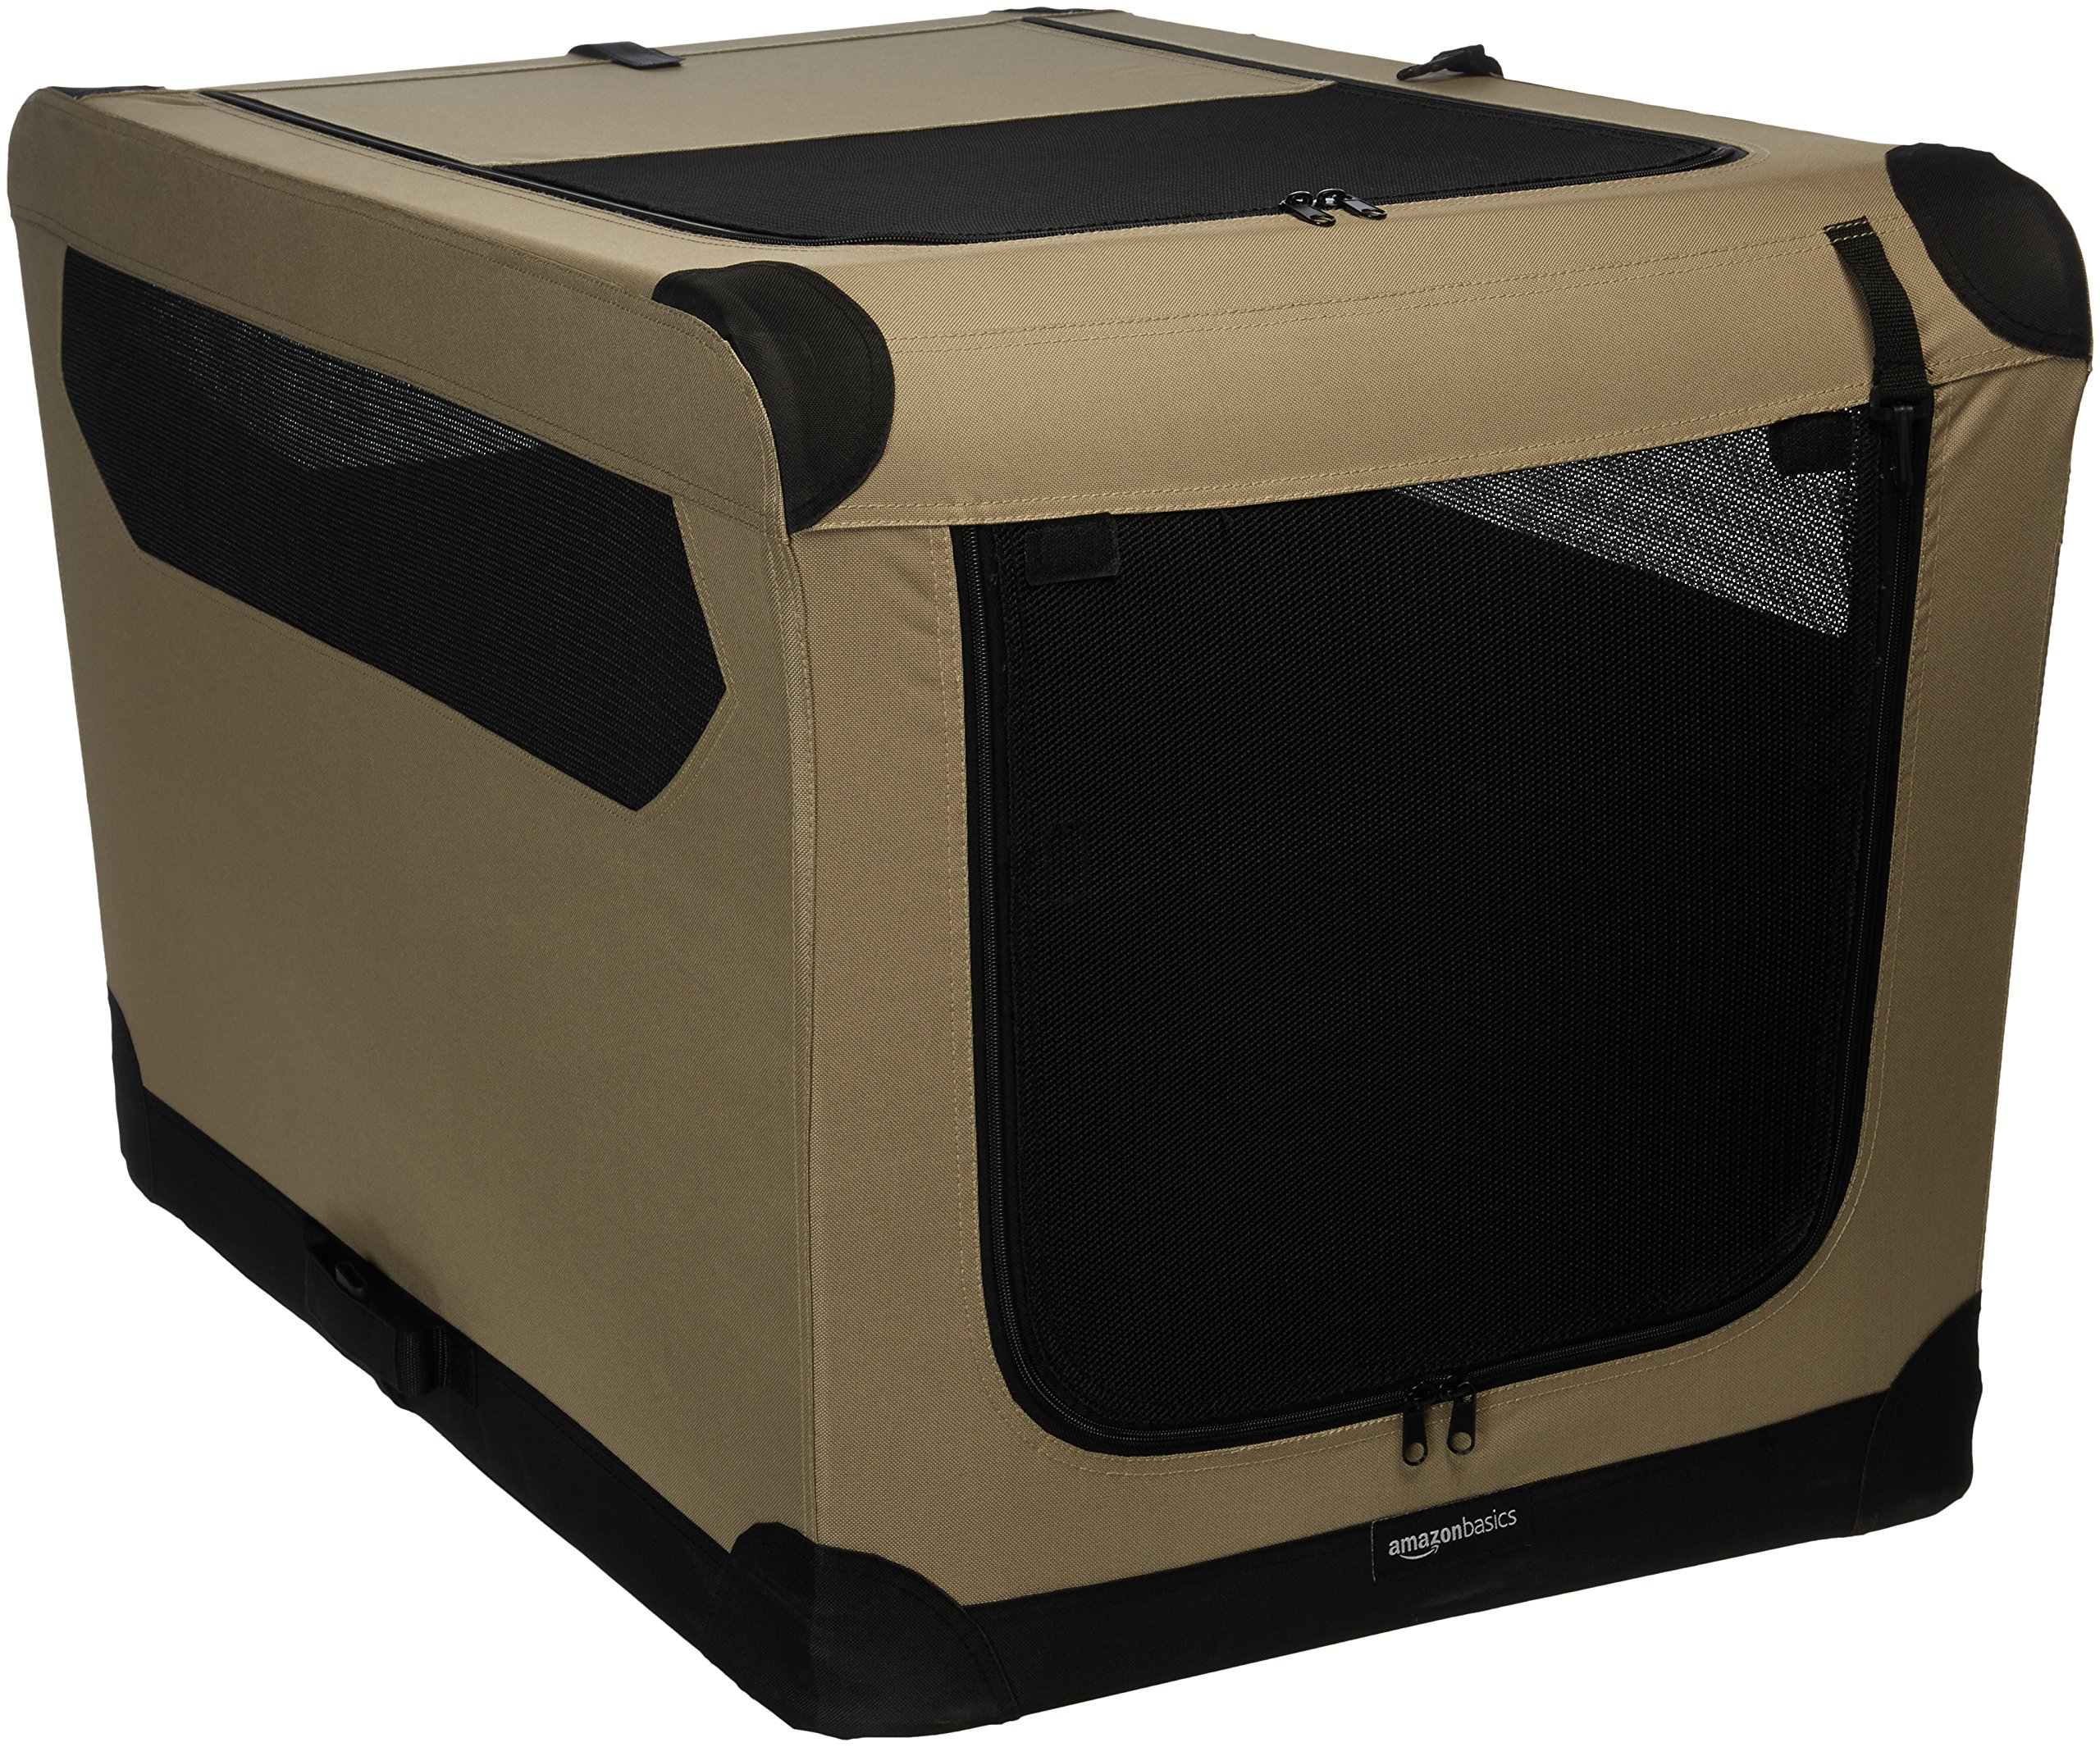 AmazonBasics Portable Folding Soft Dog Travel Crate Kennel - 24 x 24 x 36 Inches, Tan by AmazonBasics